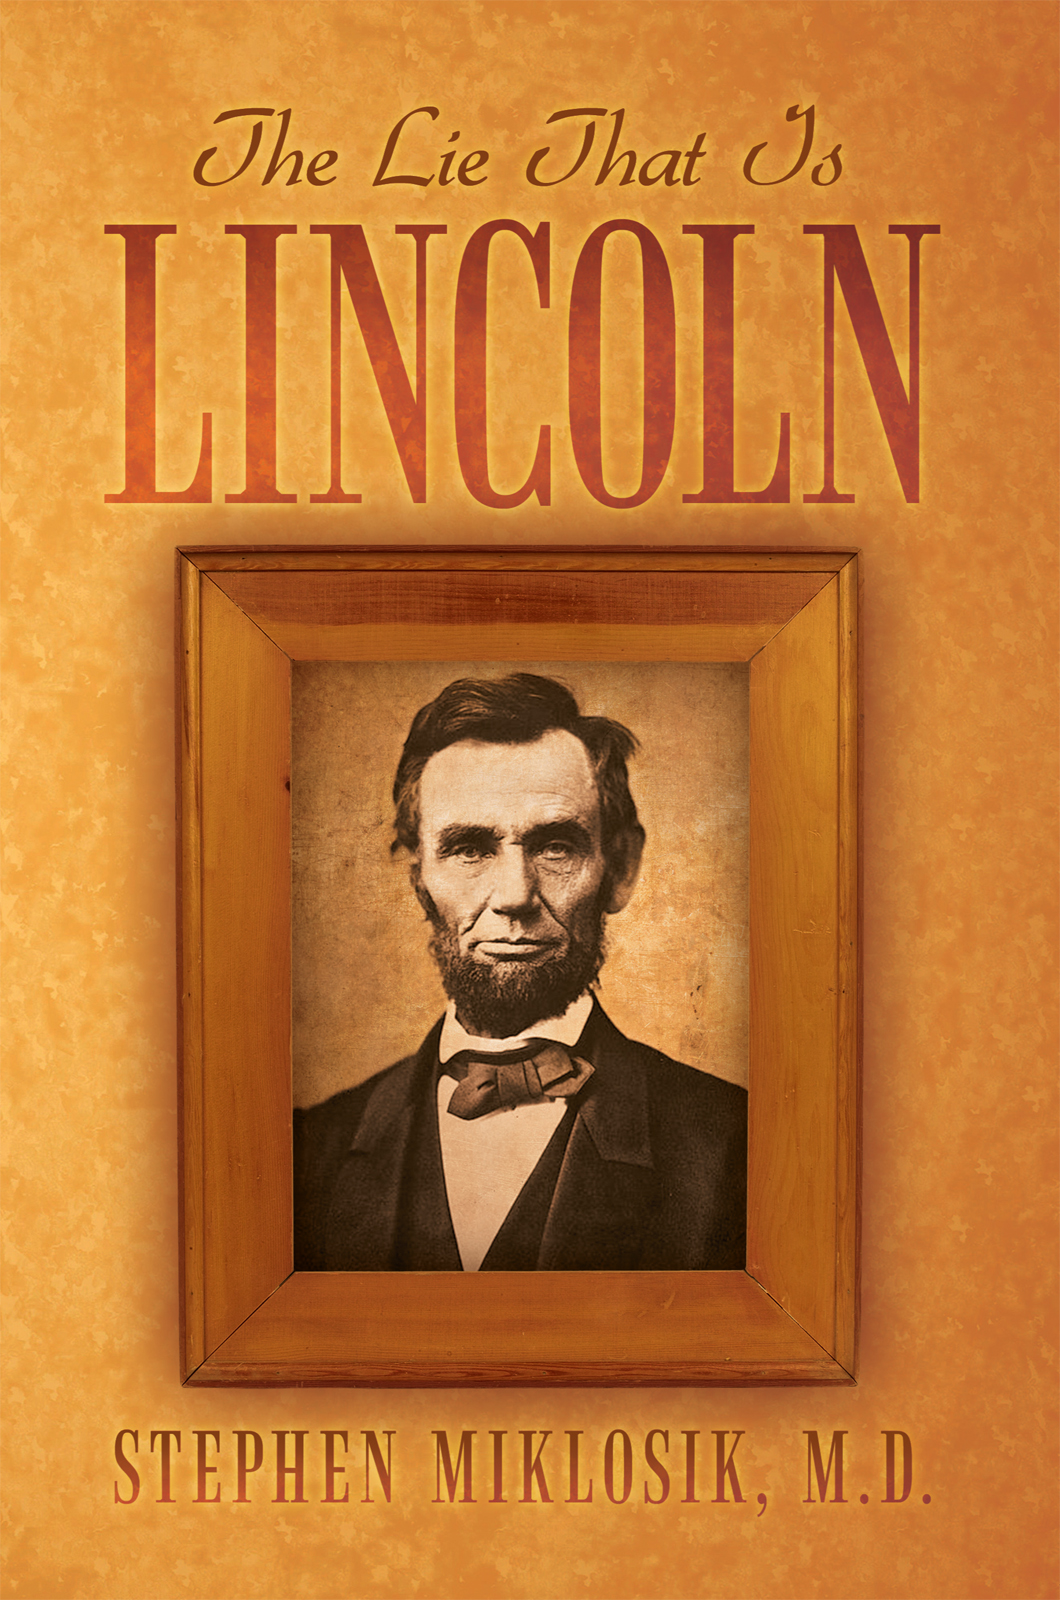 The Lie That Is Lincoln By: M.D. Stephen Miklosik